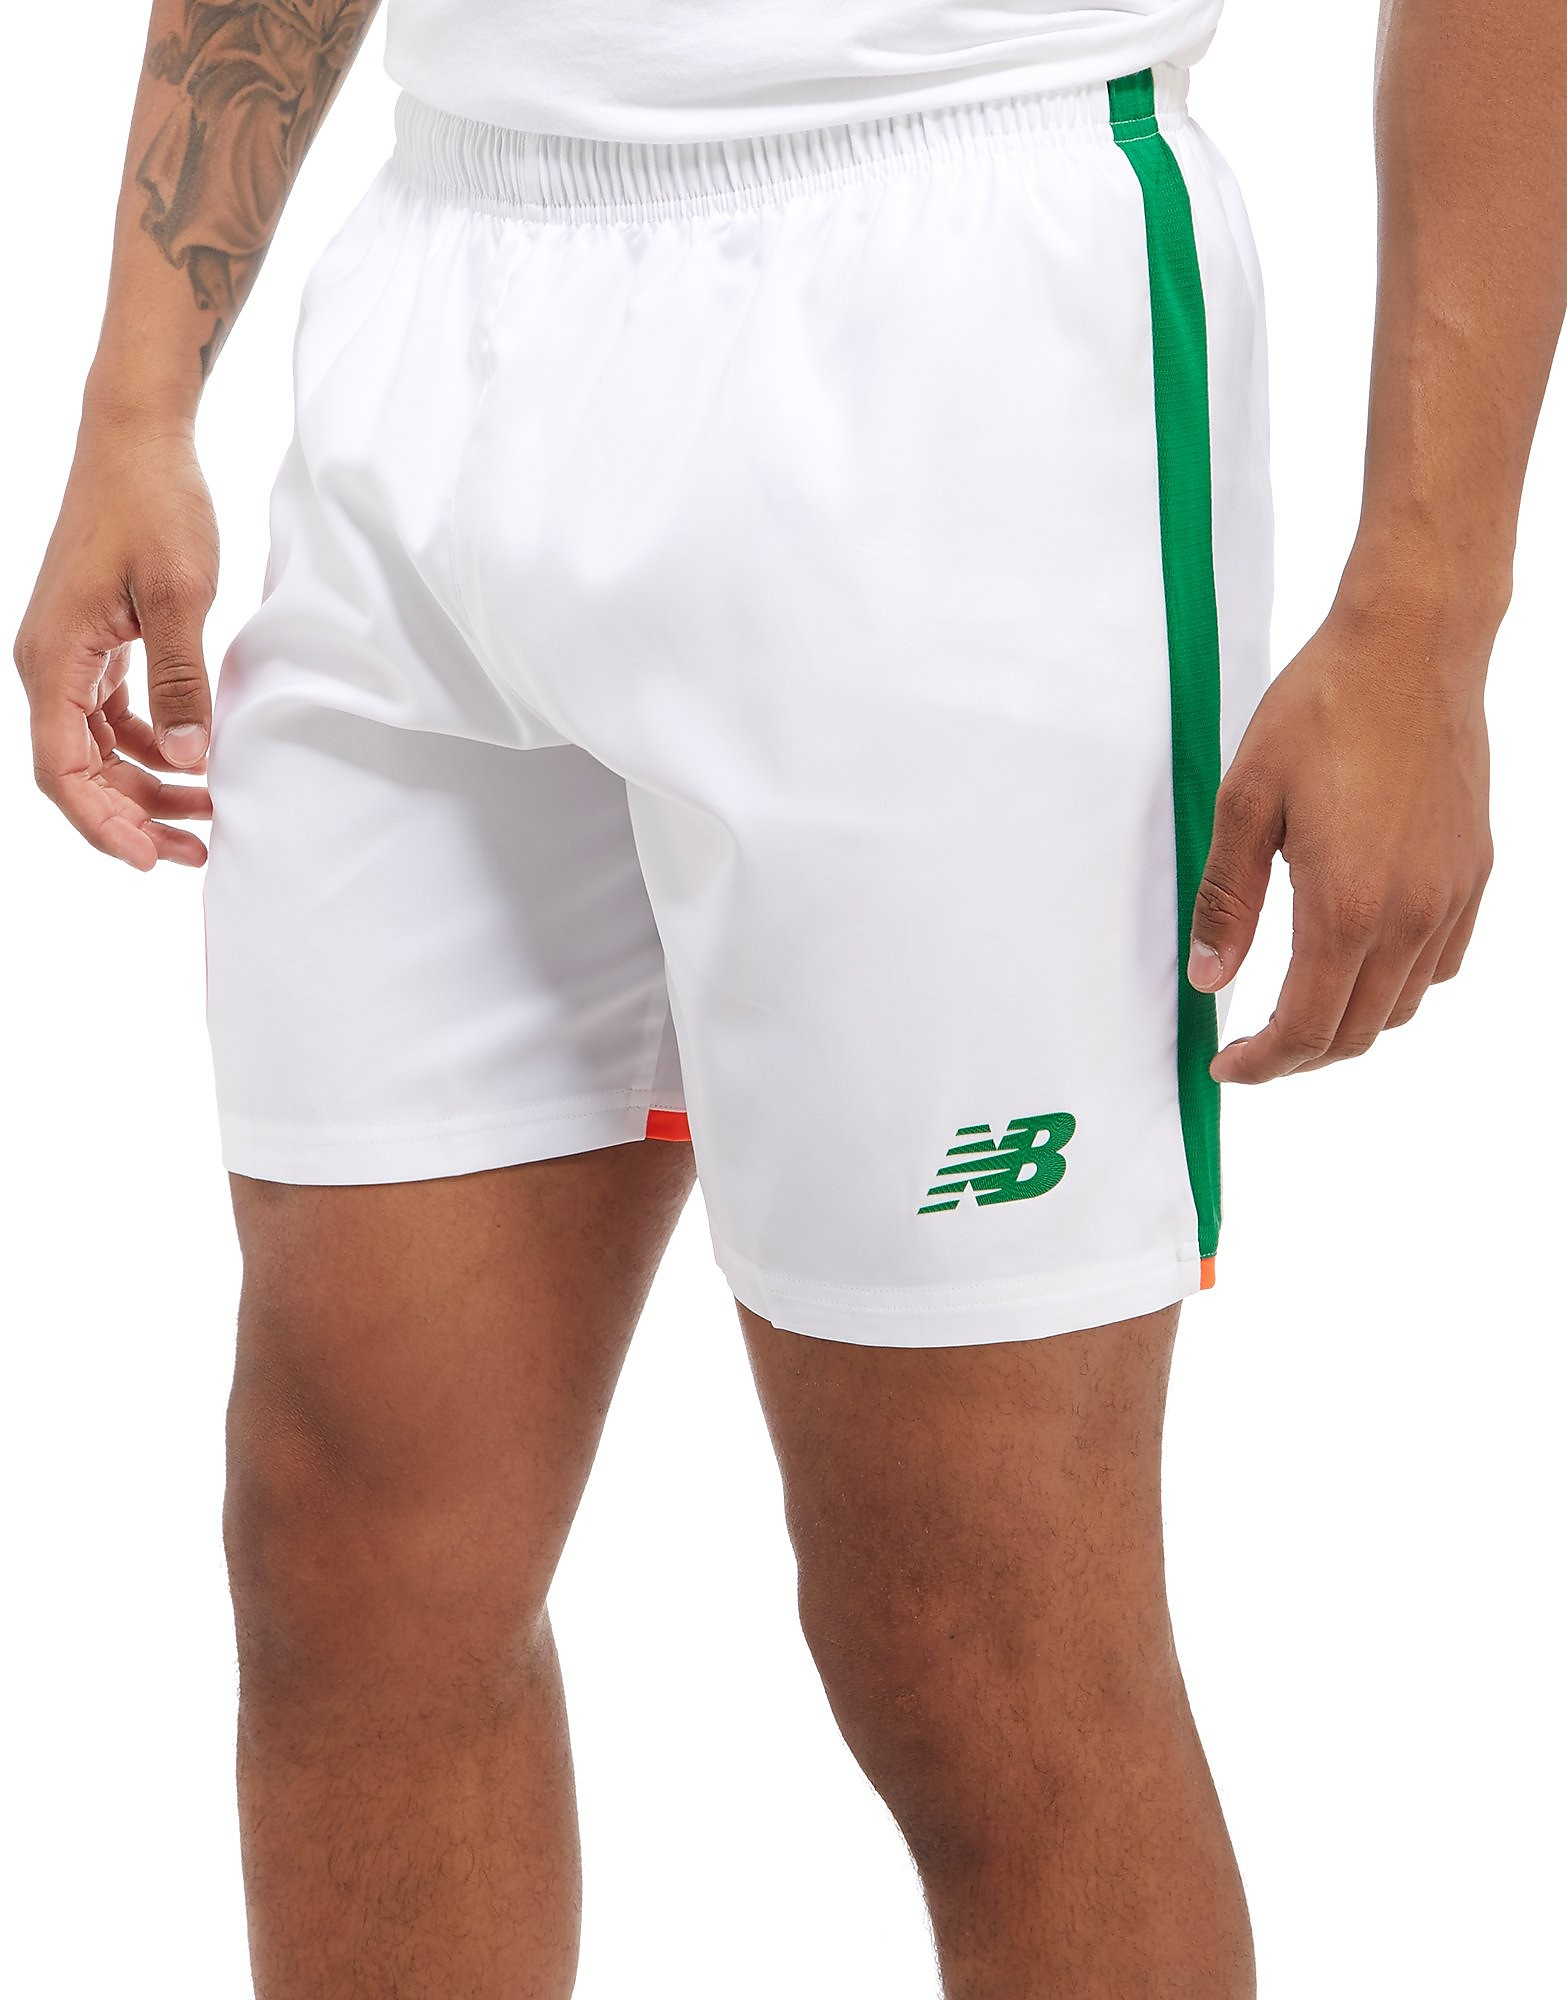 New Balance Republic of Ireland 2017/18 Home Shorts PRE ORDER